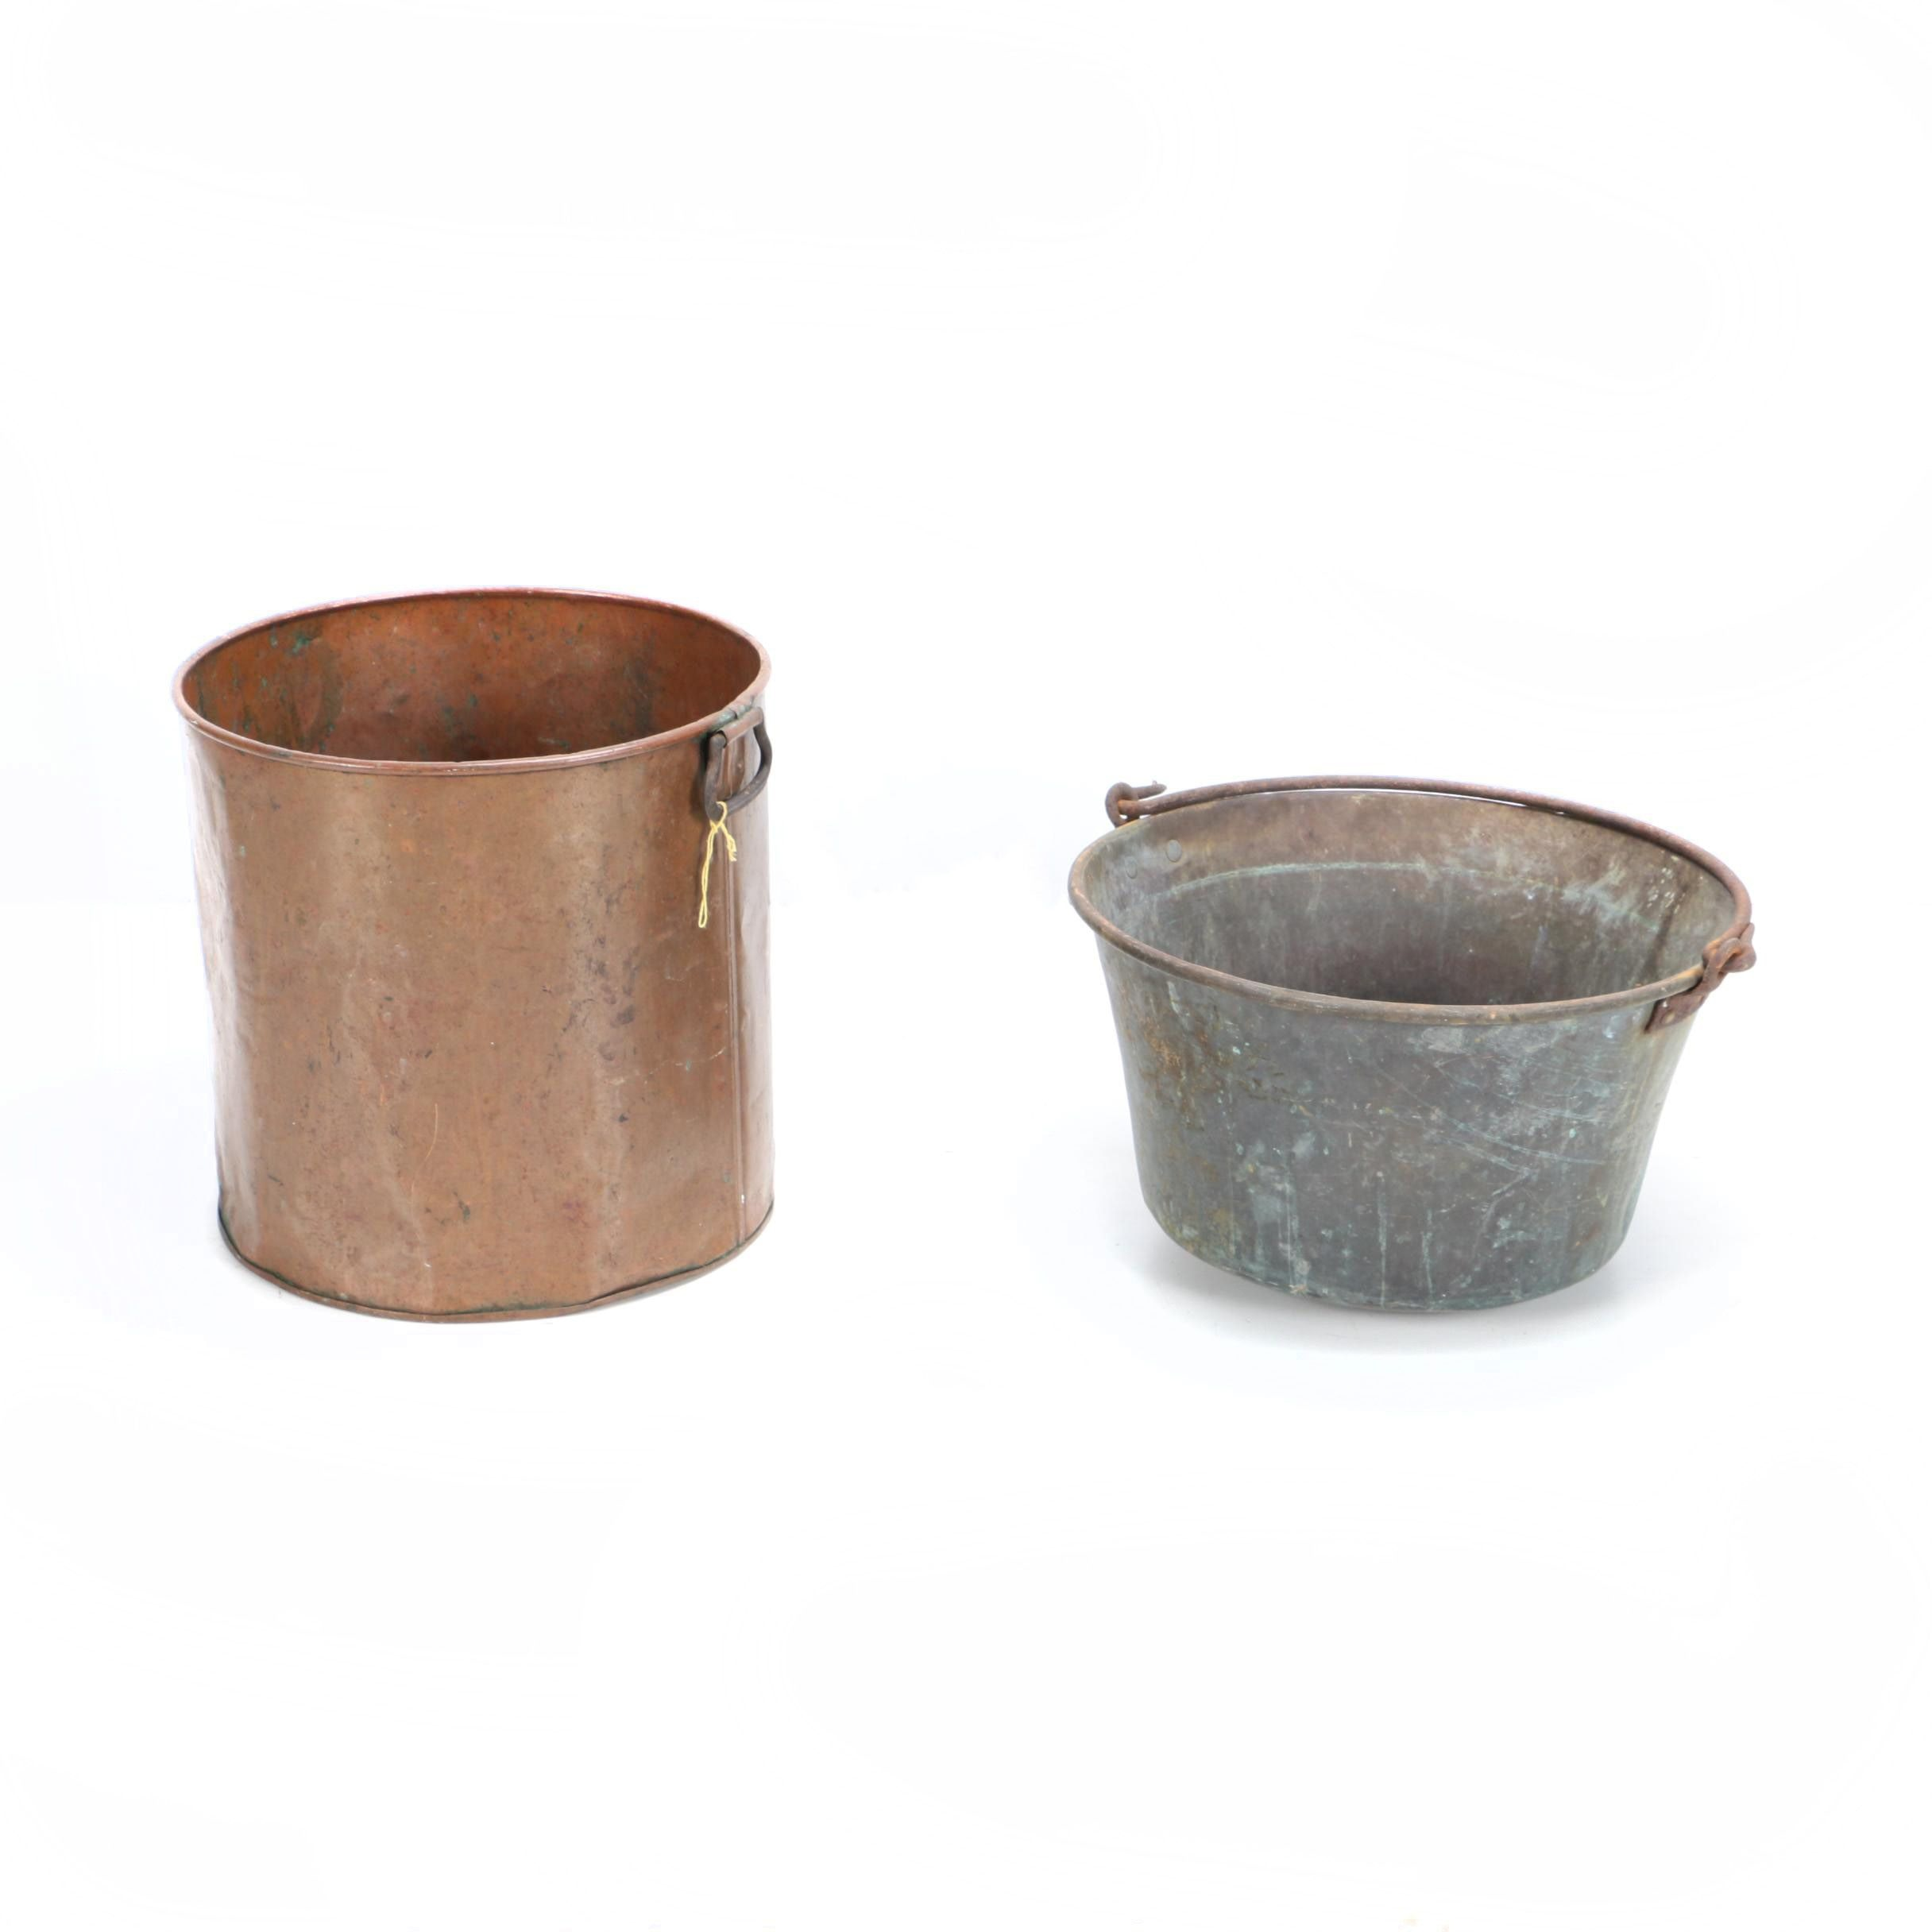 Copper and Metal Pots